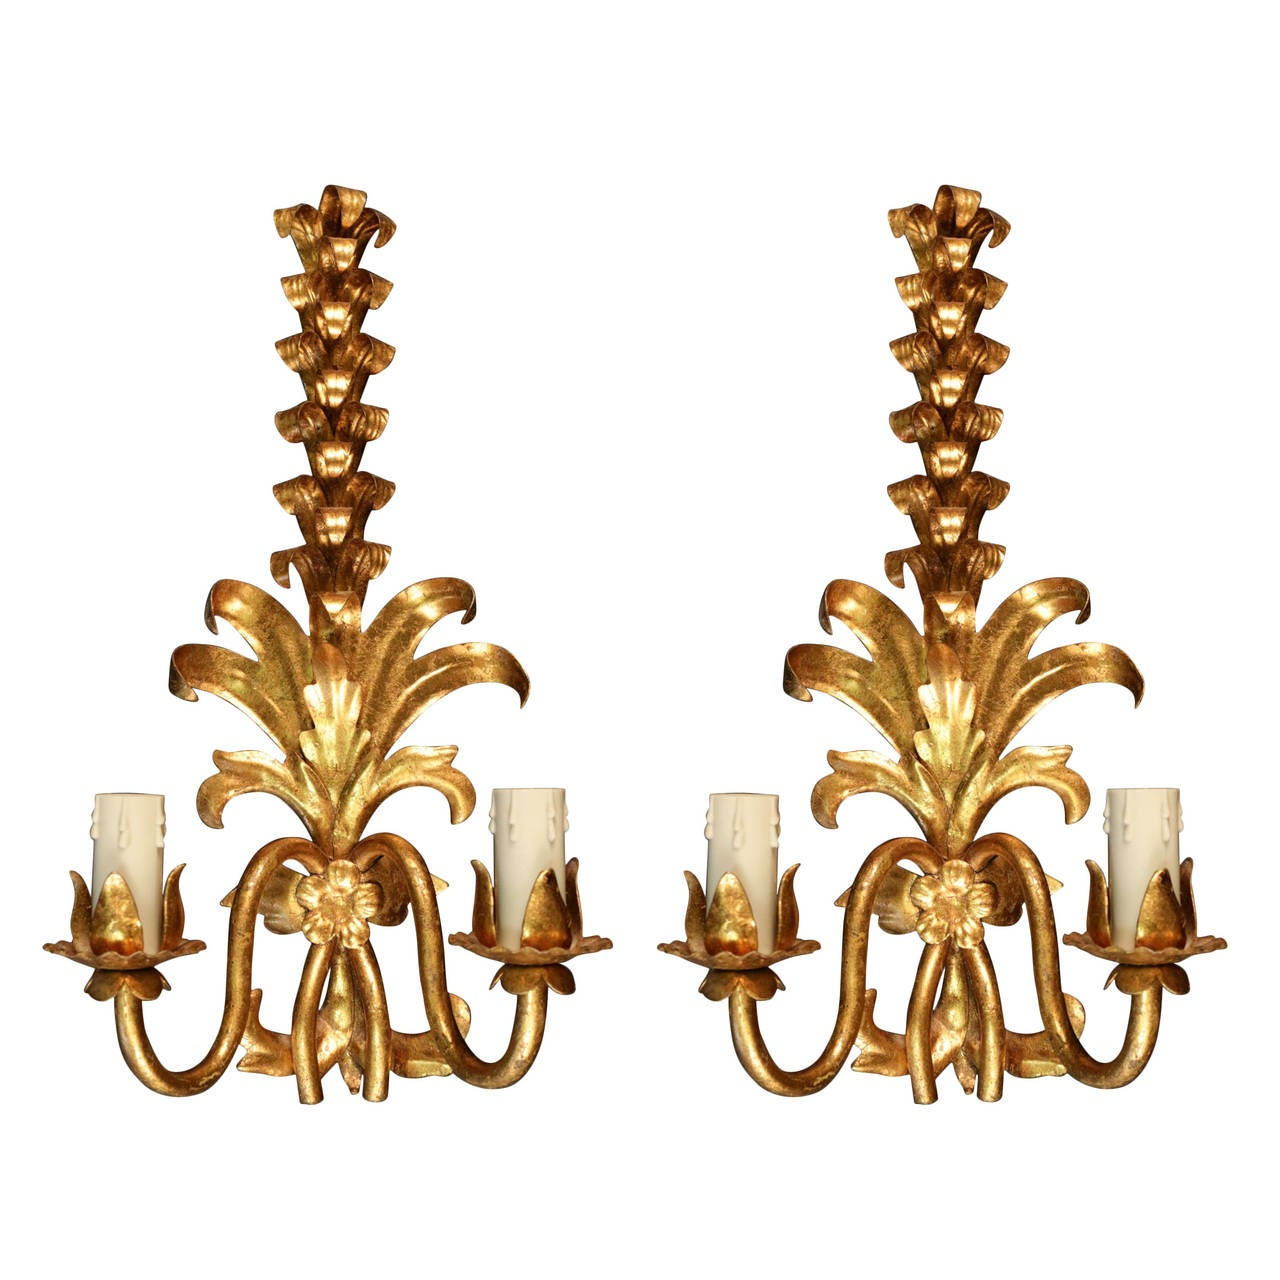 Wall Sconces With Plants : Pair of 1970s Plant Sconces by Maison FlorArt For Sale at 1stdibs